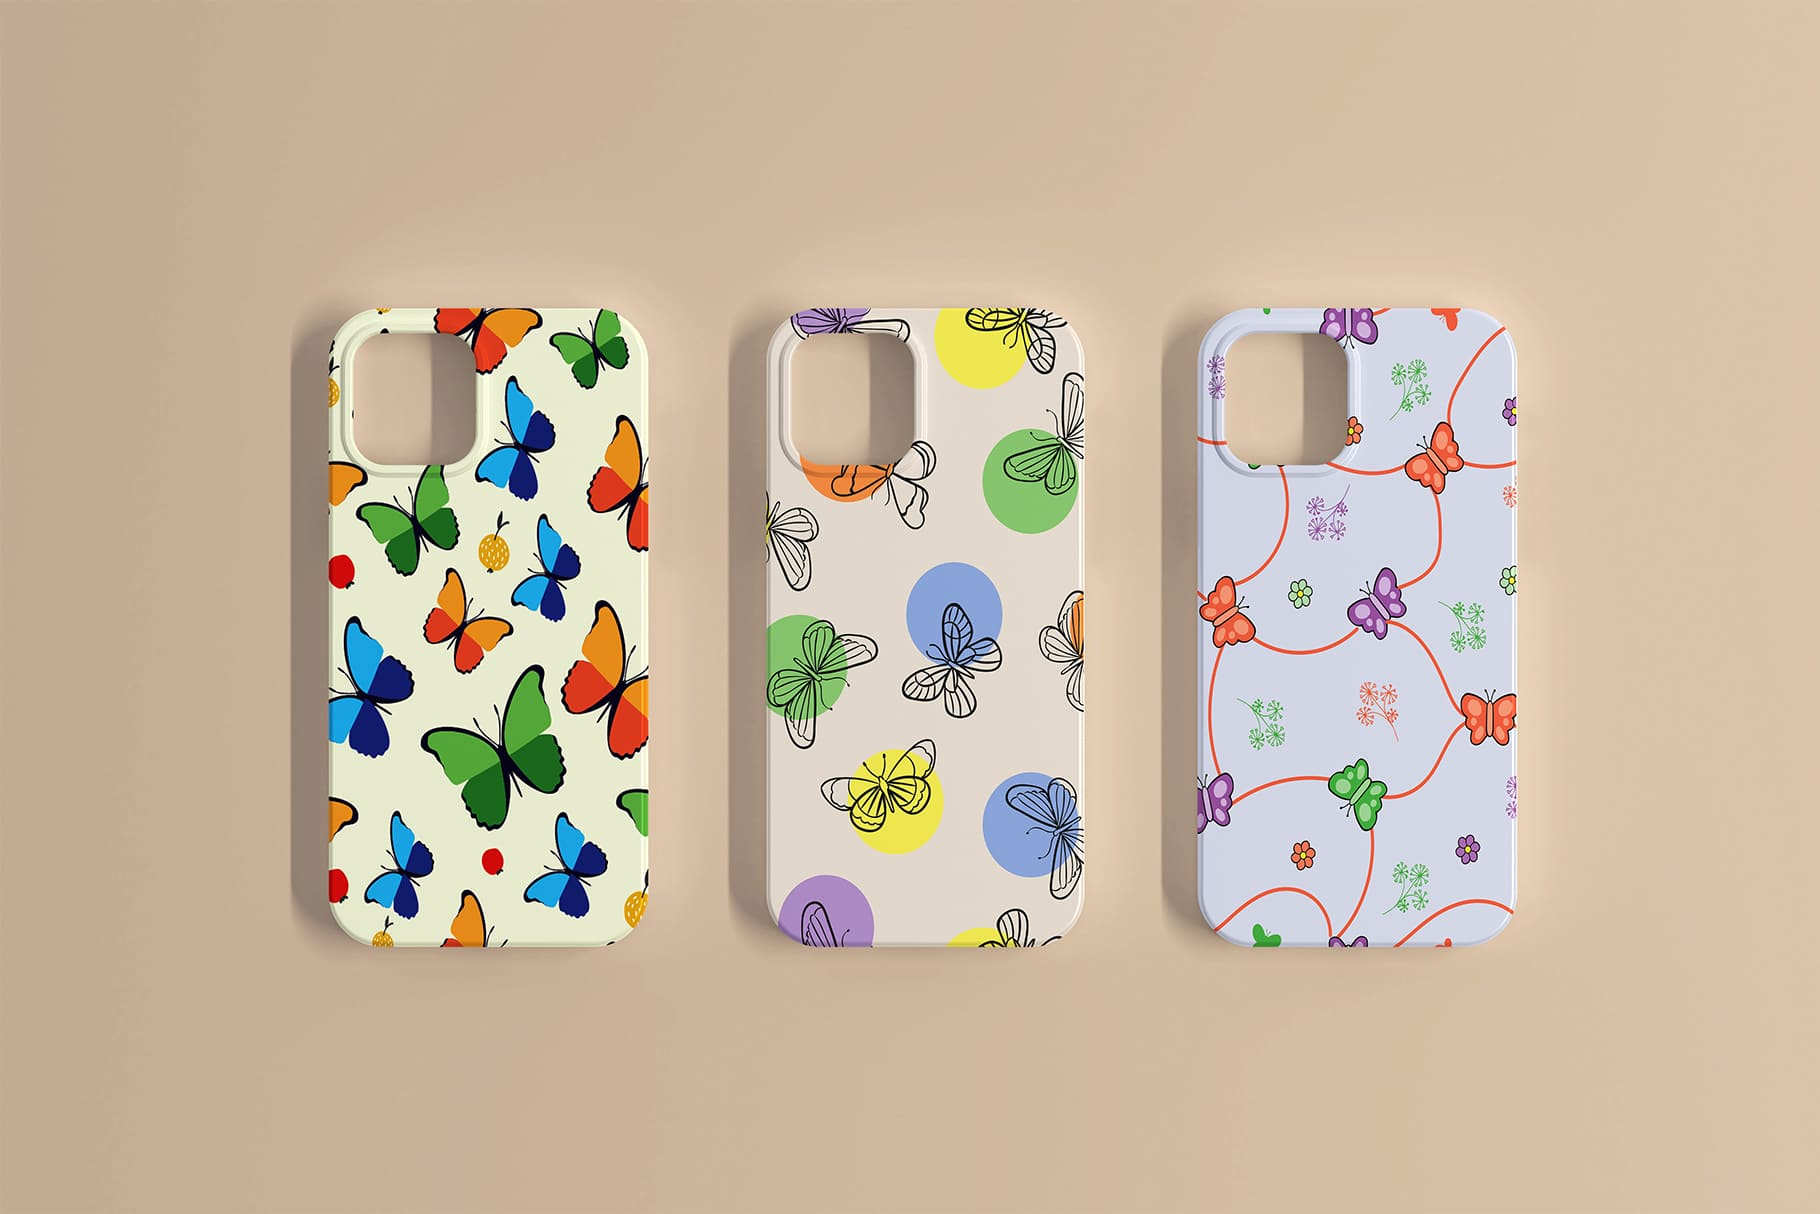 Cases for iPhone in different colors with butterflies.